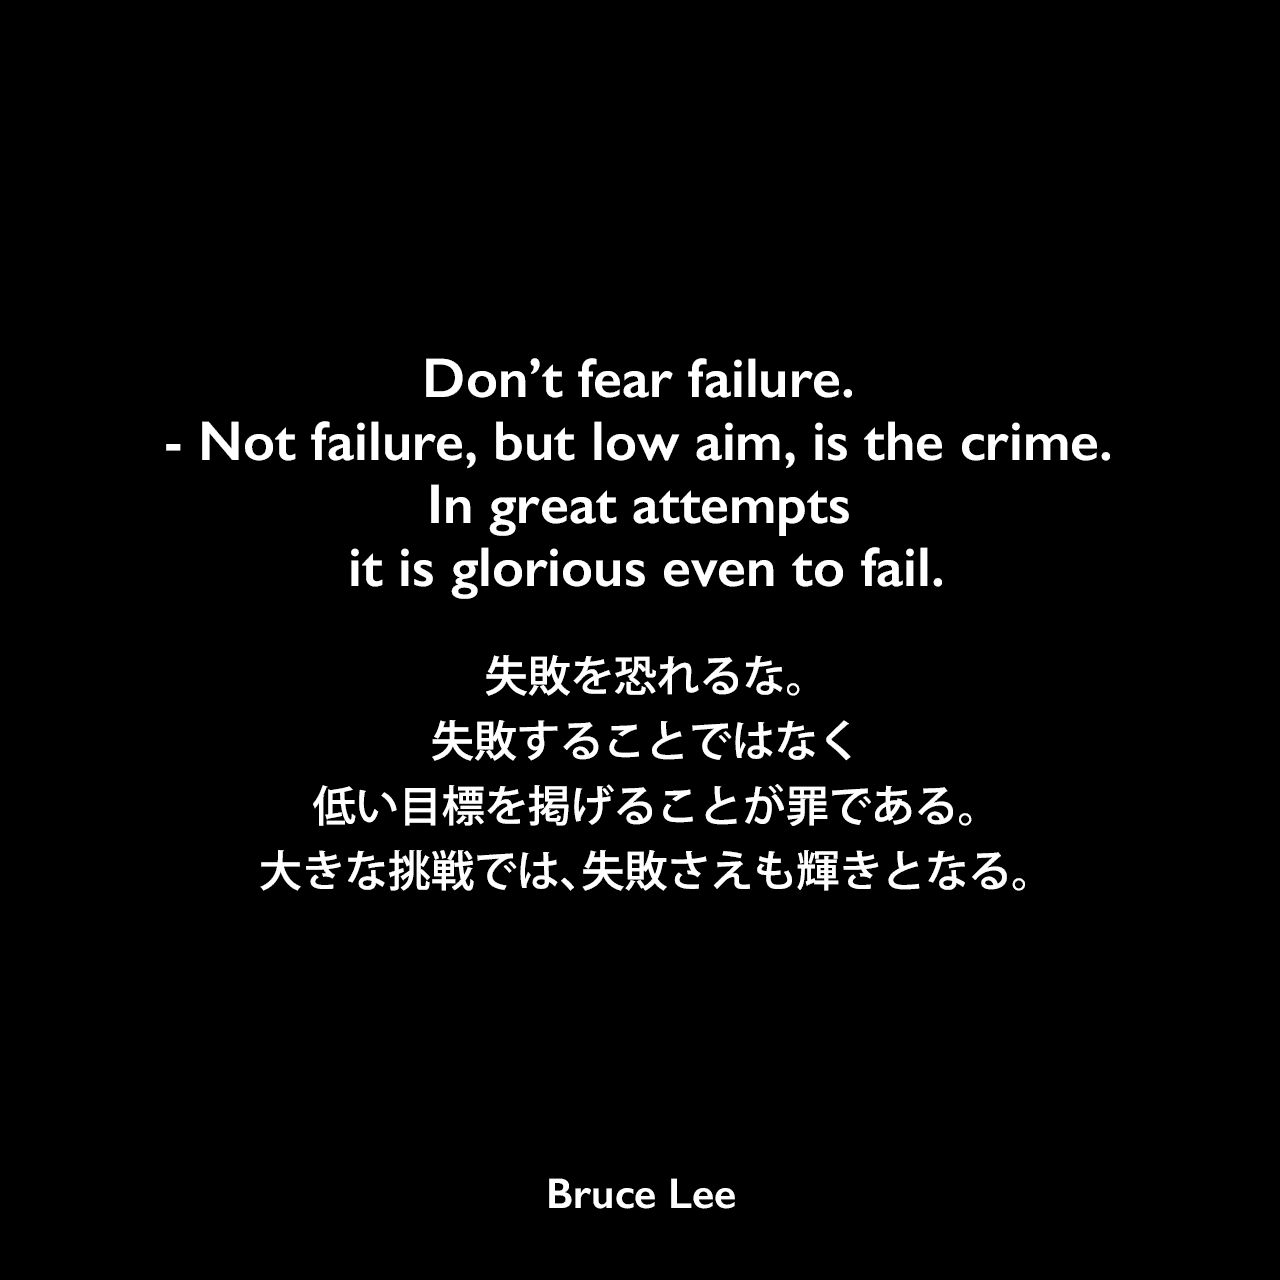 Don't fear failure. — Not failure, but low aim, is the crime. In great attempts it is glorious even to fail.失敗を恐れるな。失敗することではなく、低い目標を掲げることが罪である。大きな挑戦では、失敗さえも輝きとなる。